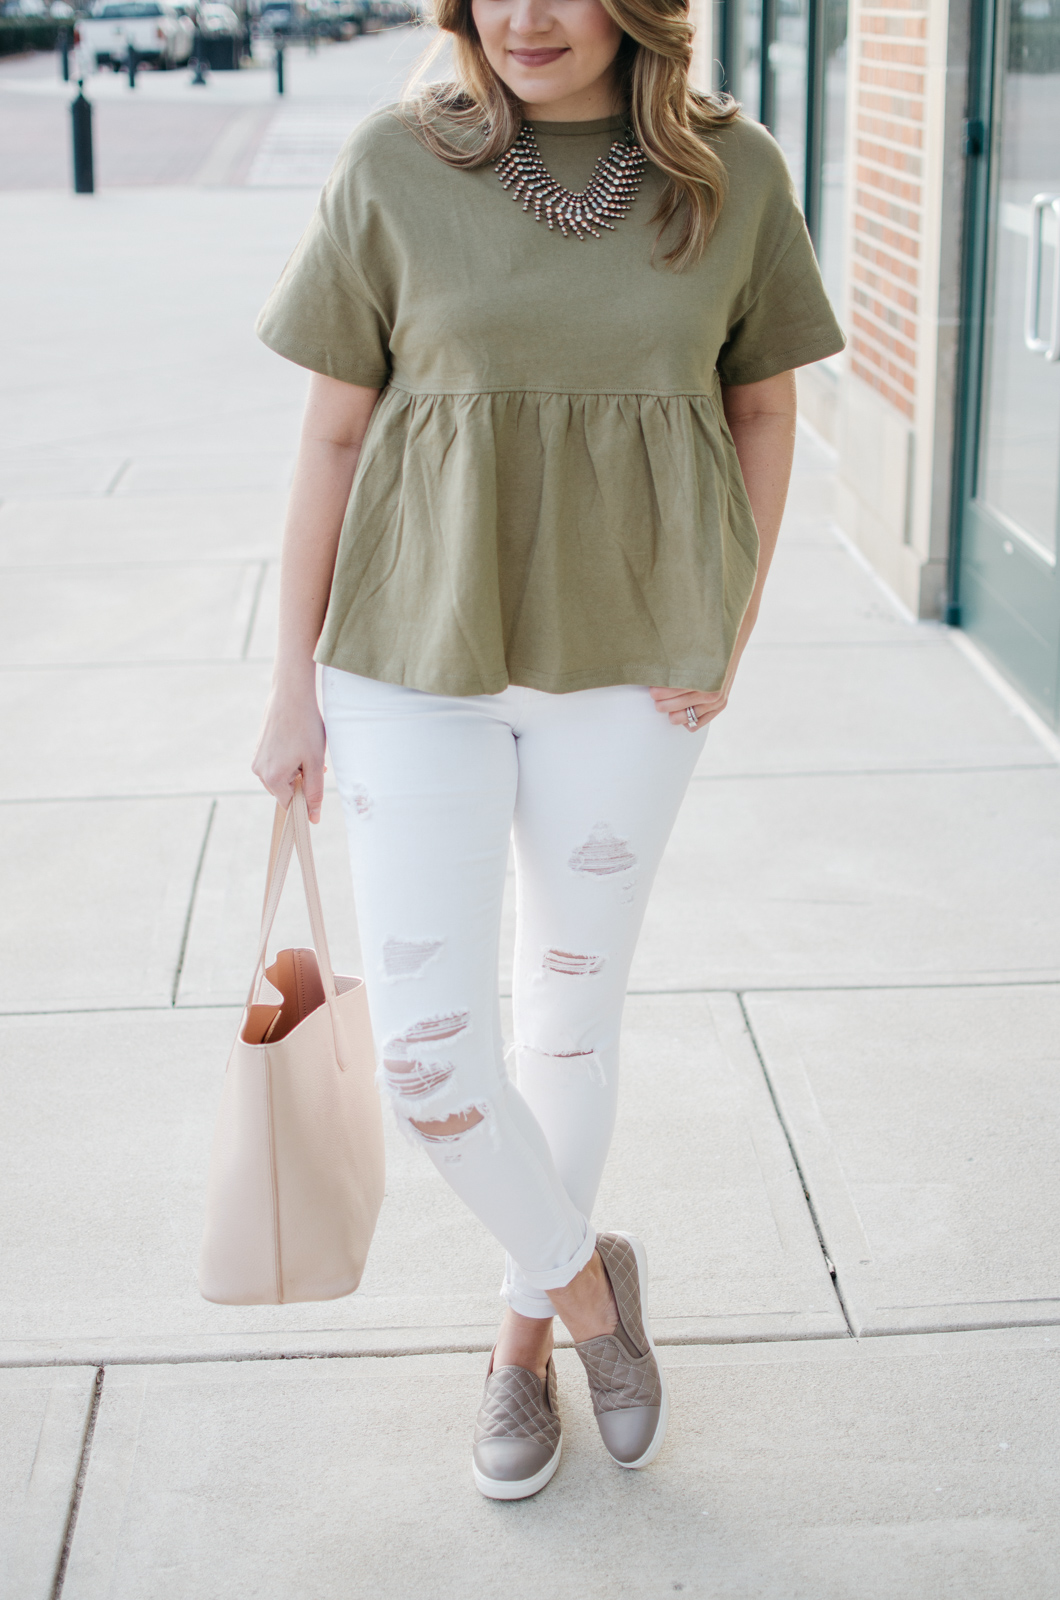 casual spring outfit ideas - cute peplum tee outfit. Click through for more cute casual outfits or to shop this look! bylaurenm.com